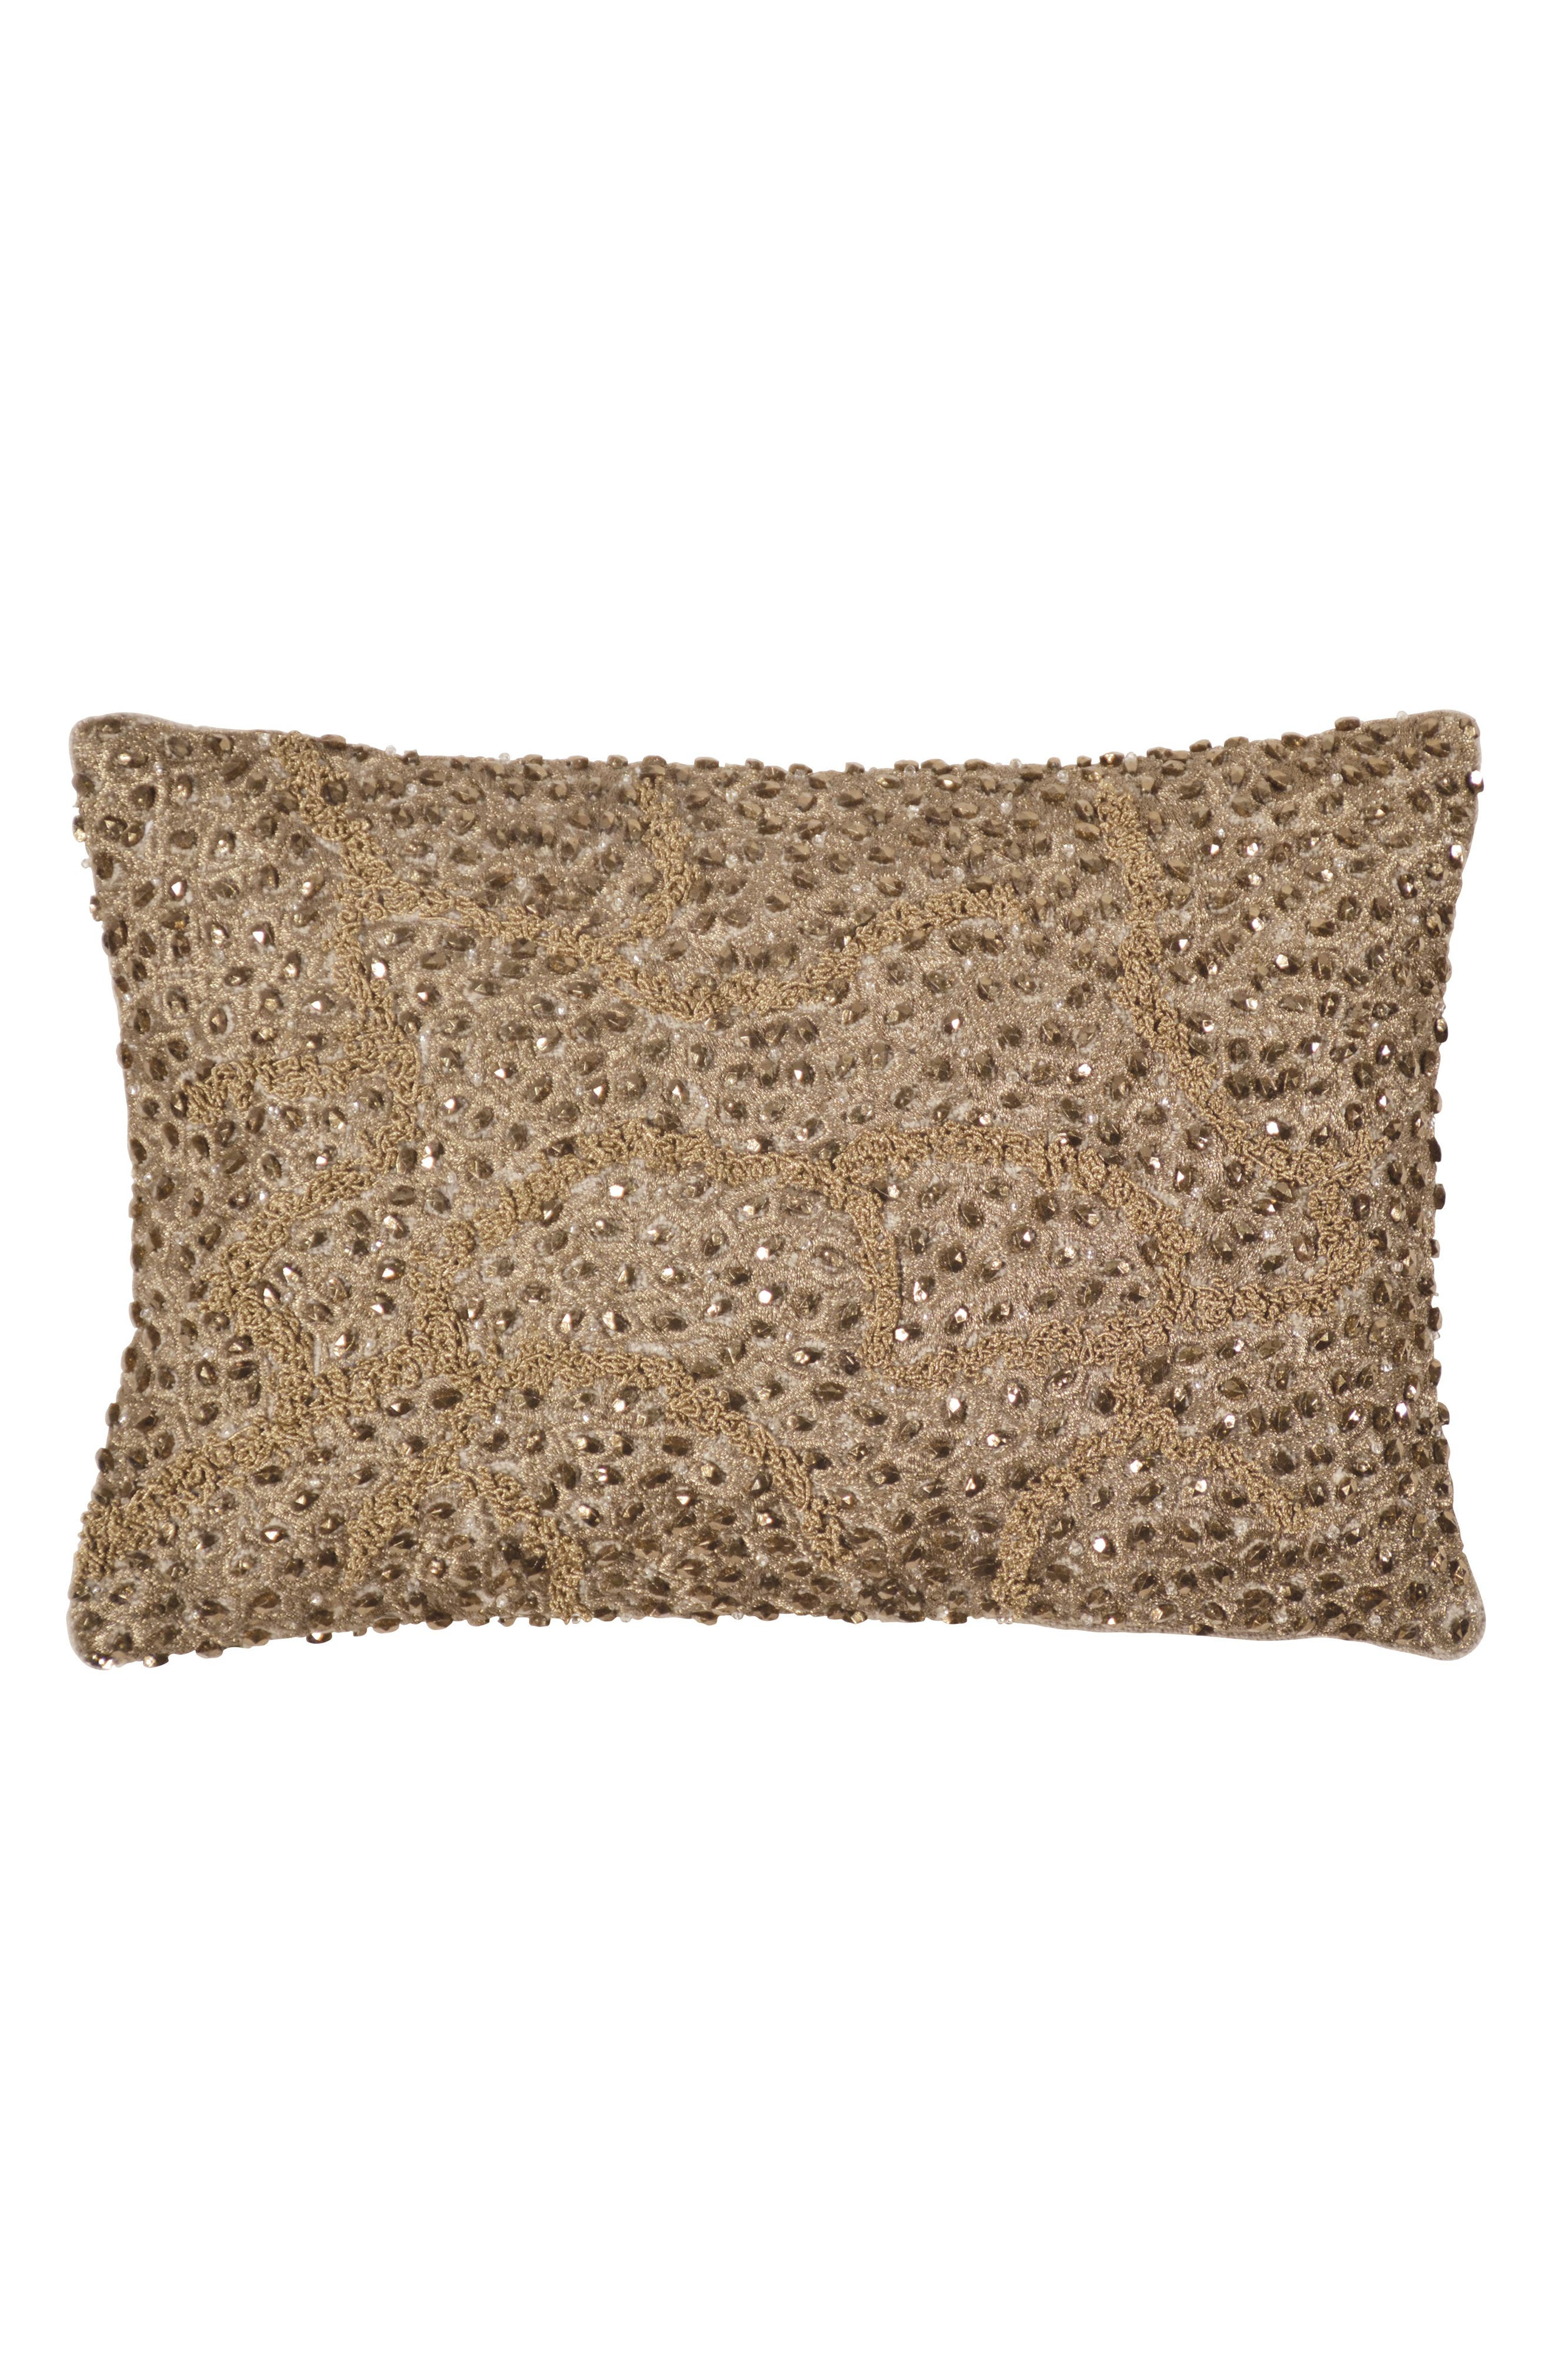 Micahel Aram Pomegranate Beaded Accent Pillow,                         Main,                         color, Gold